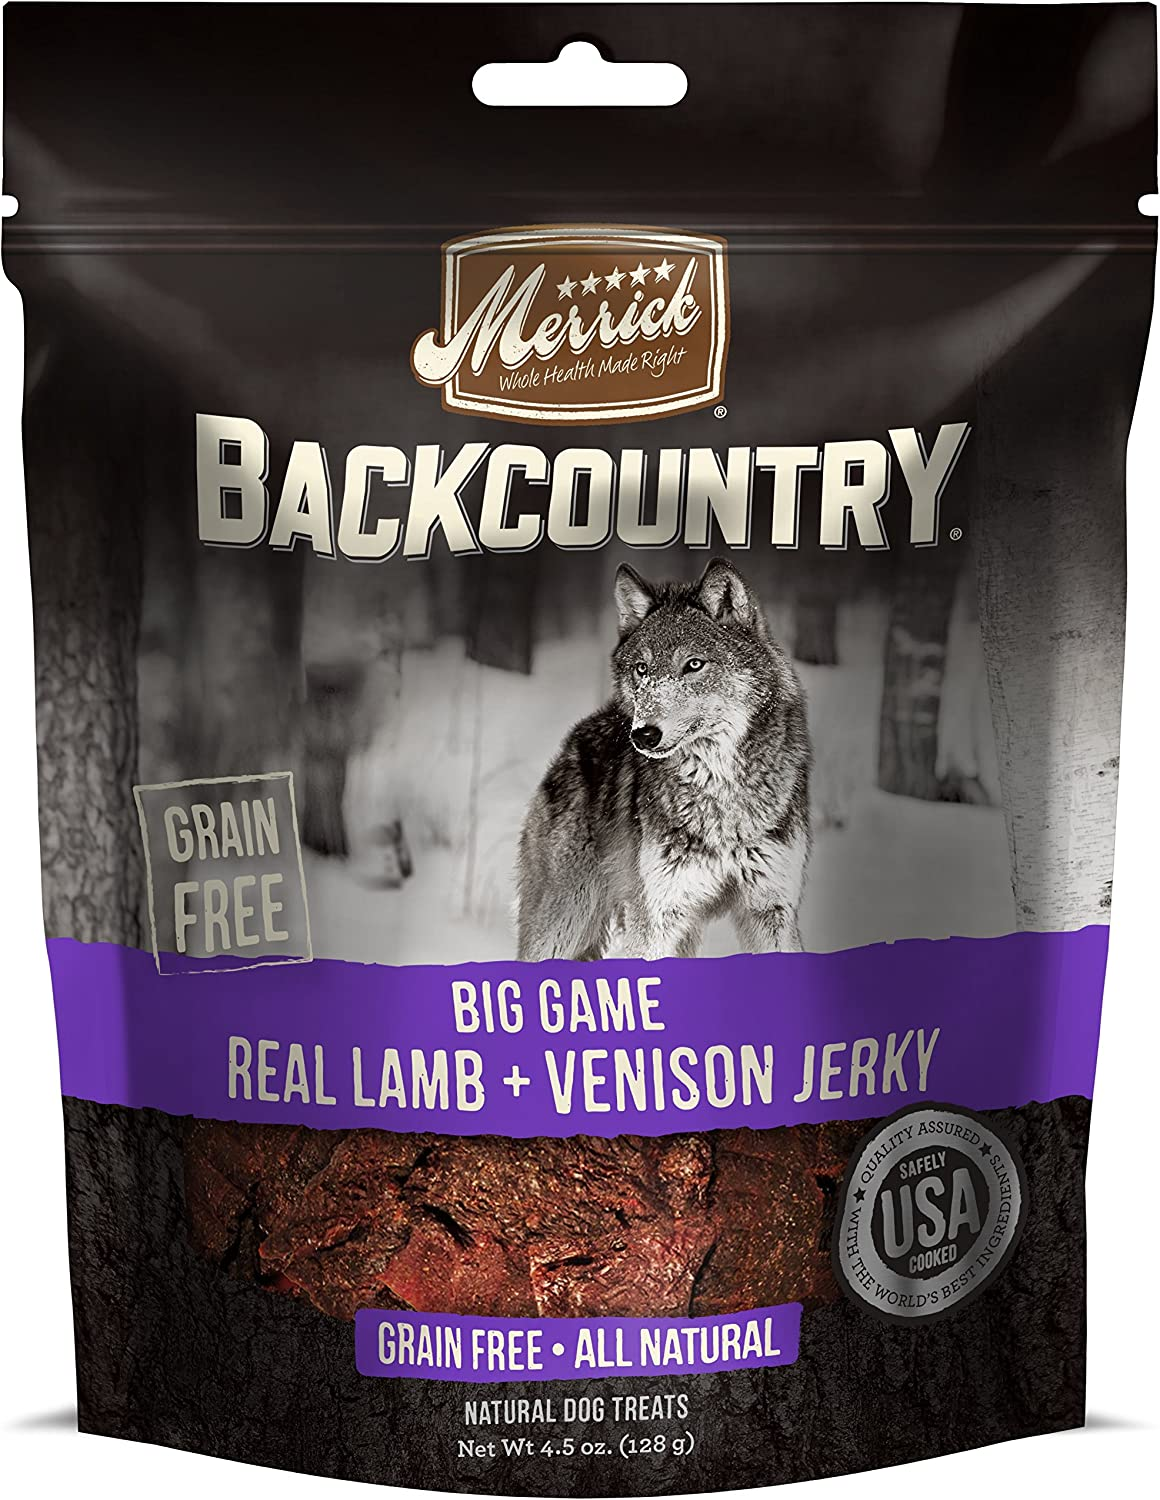 Merrick Backcountry Big Game Real Lamb + Venison Jerky Dog Treat, 4.5Oz